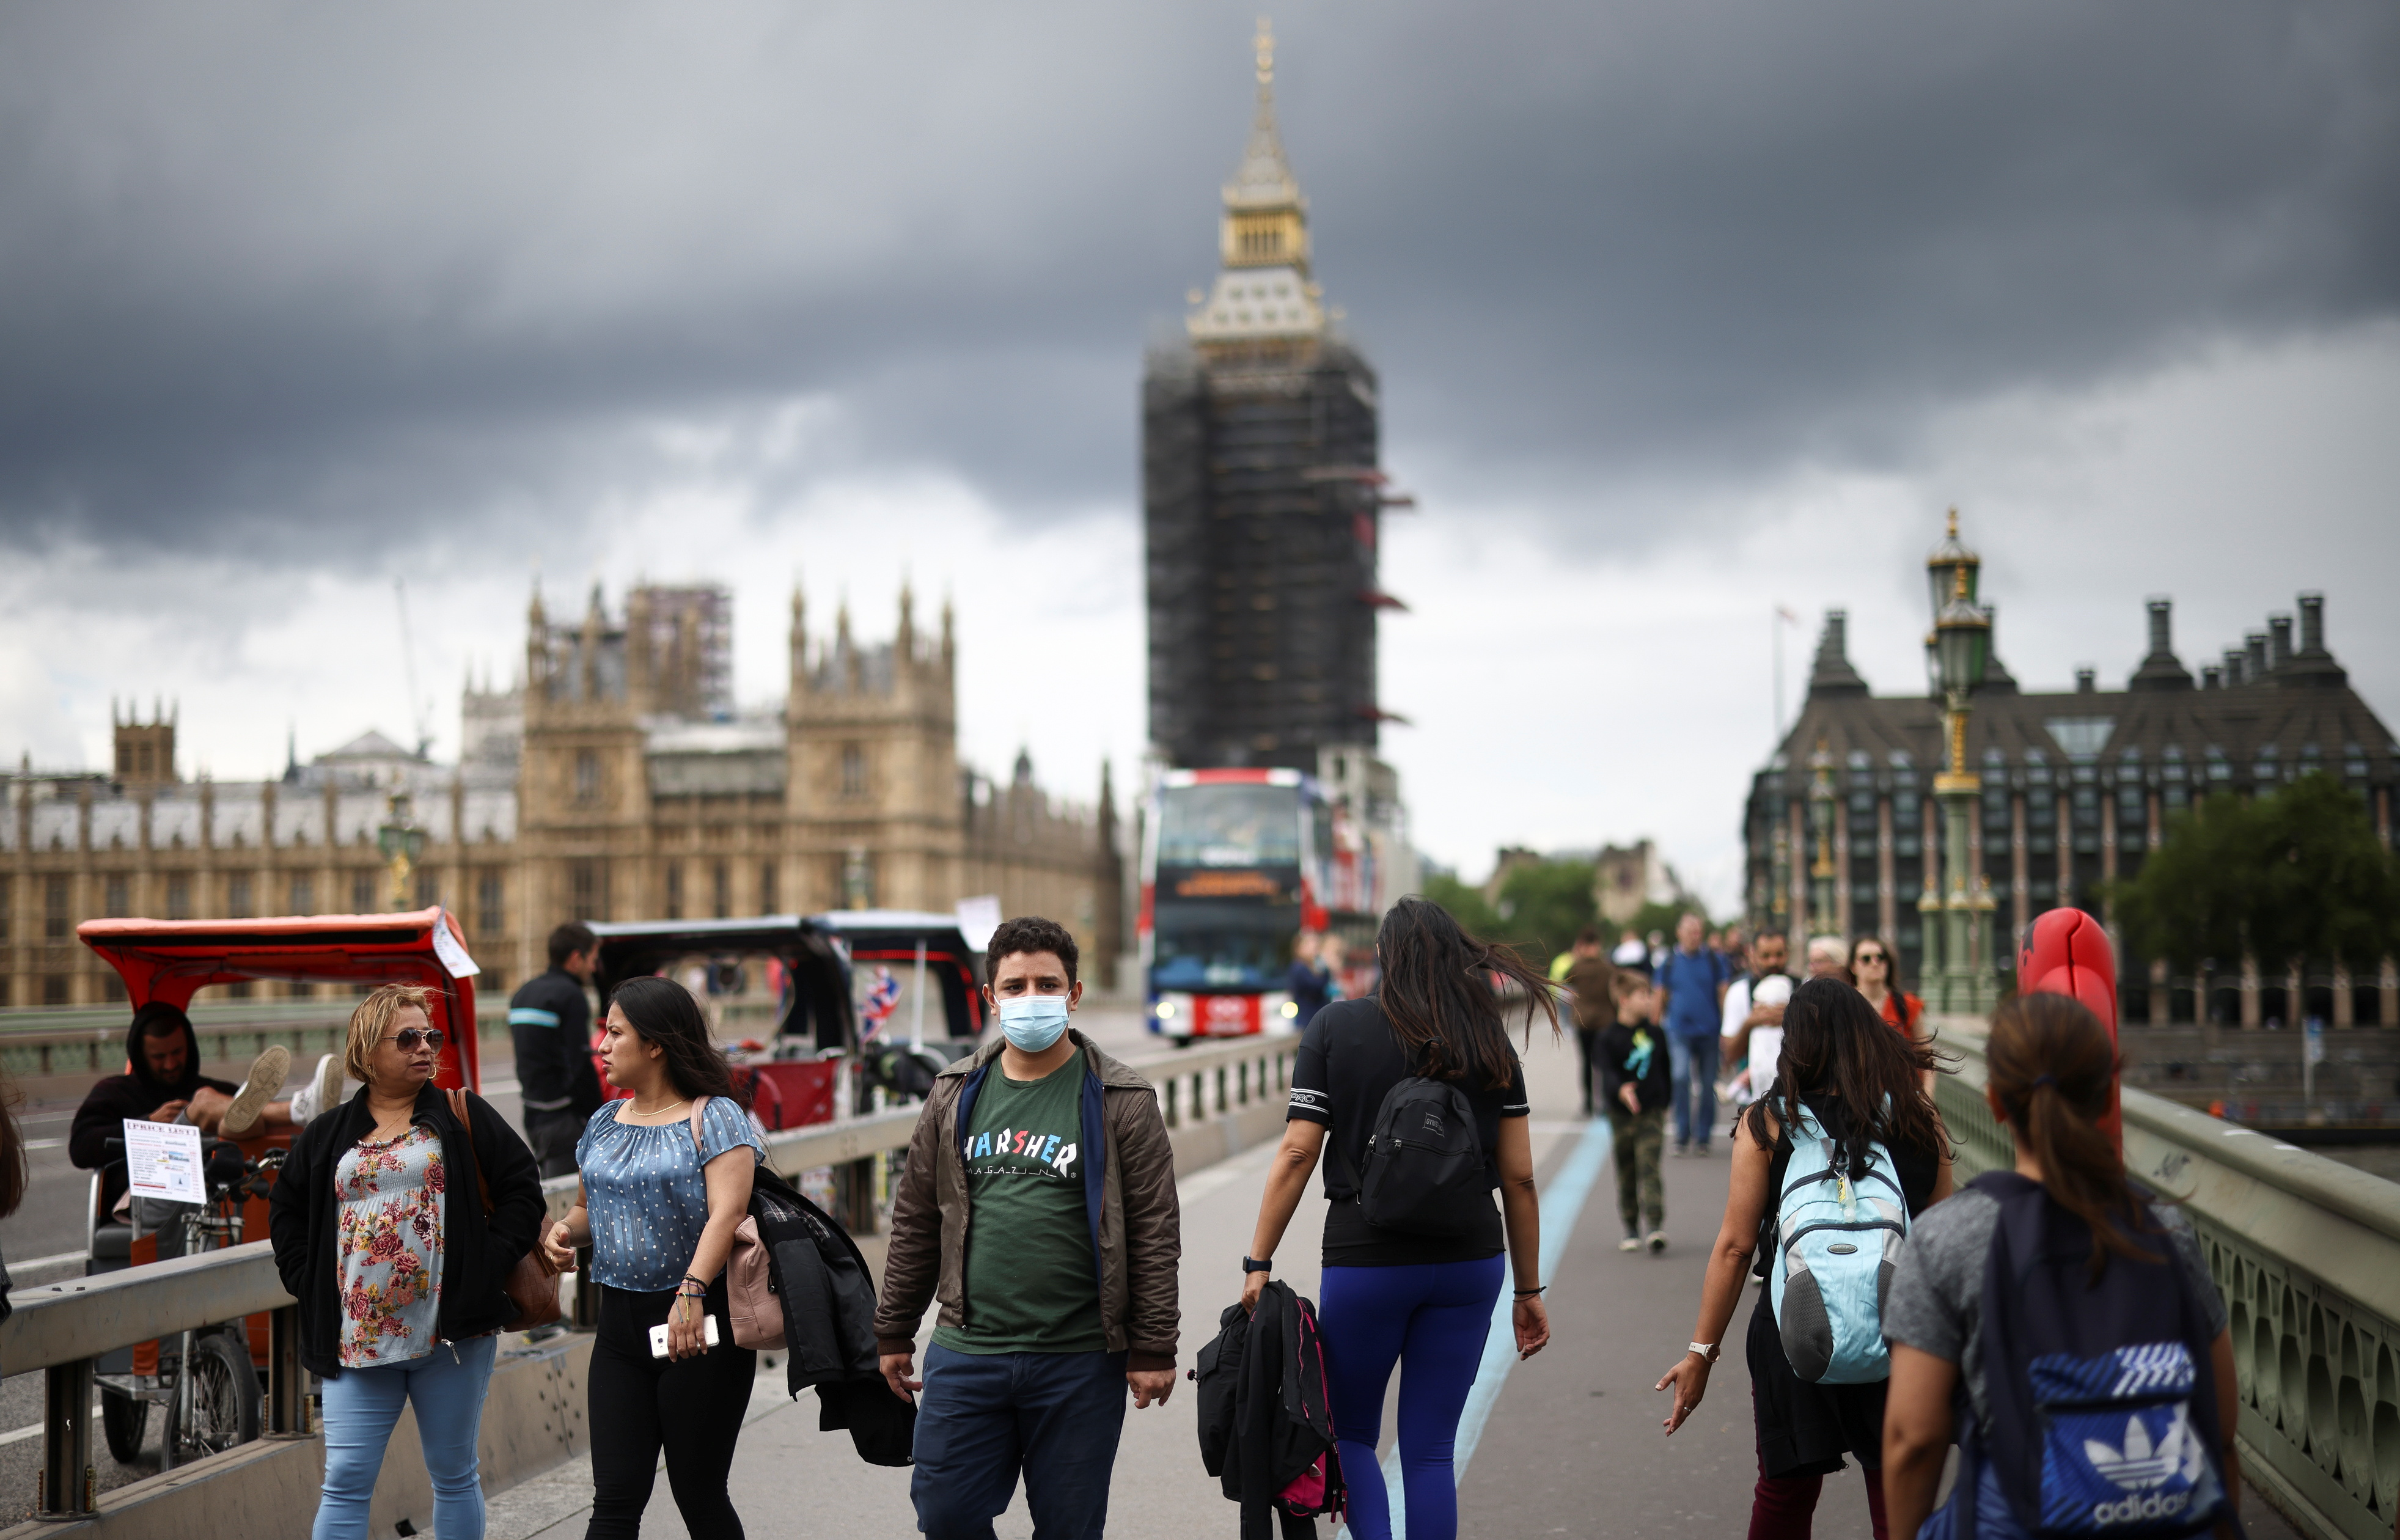 People, some wearing protective face masks, walk over Westminster Bridge, amid the coronavirus disease (COVID-19) pandemic, in London, Britain, July 4, 2021. REUTERS/Henry Nicholls